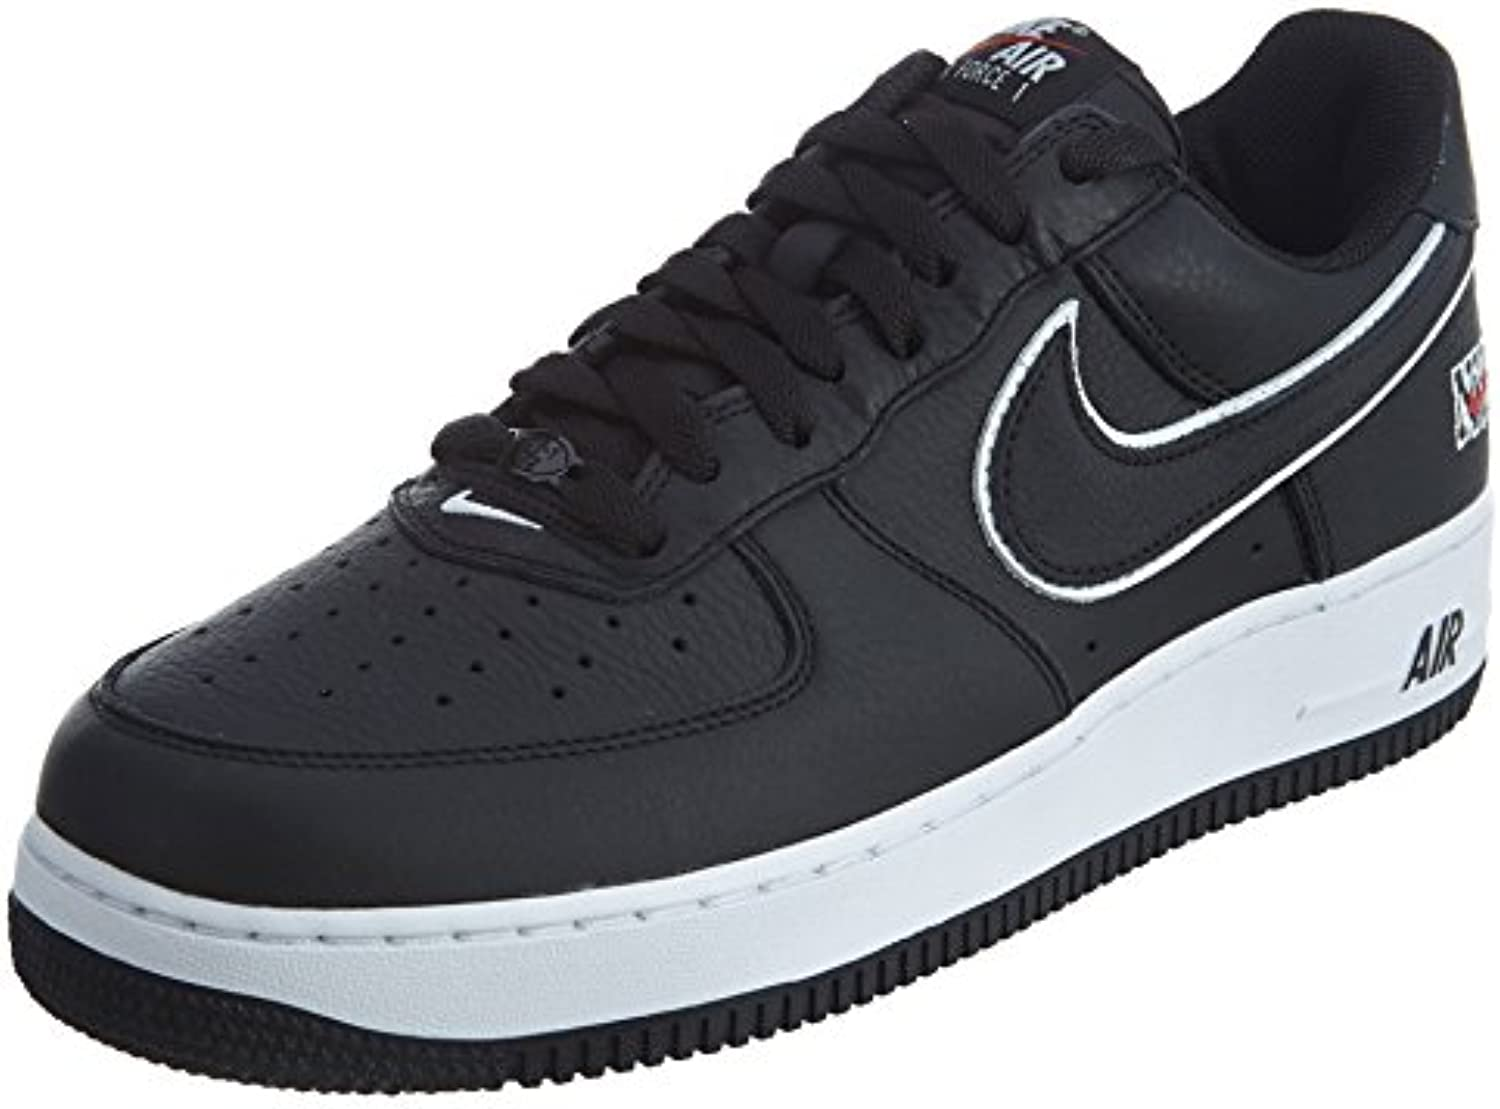 Air Force 1 Low Retro 'NYC'   845053 002